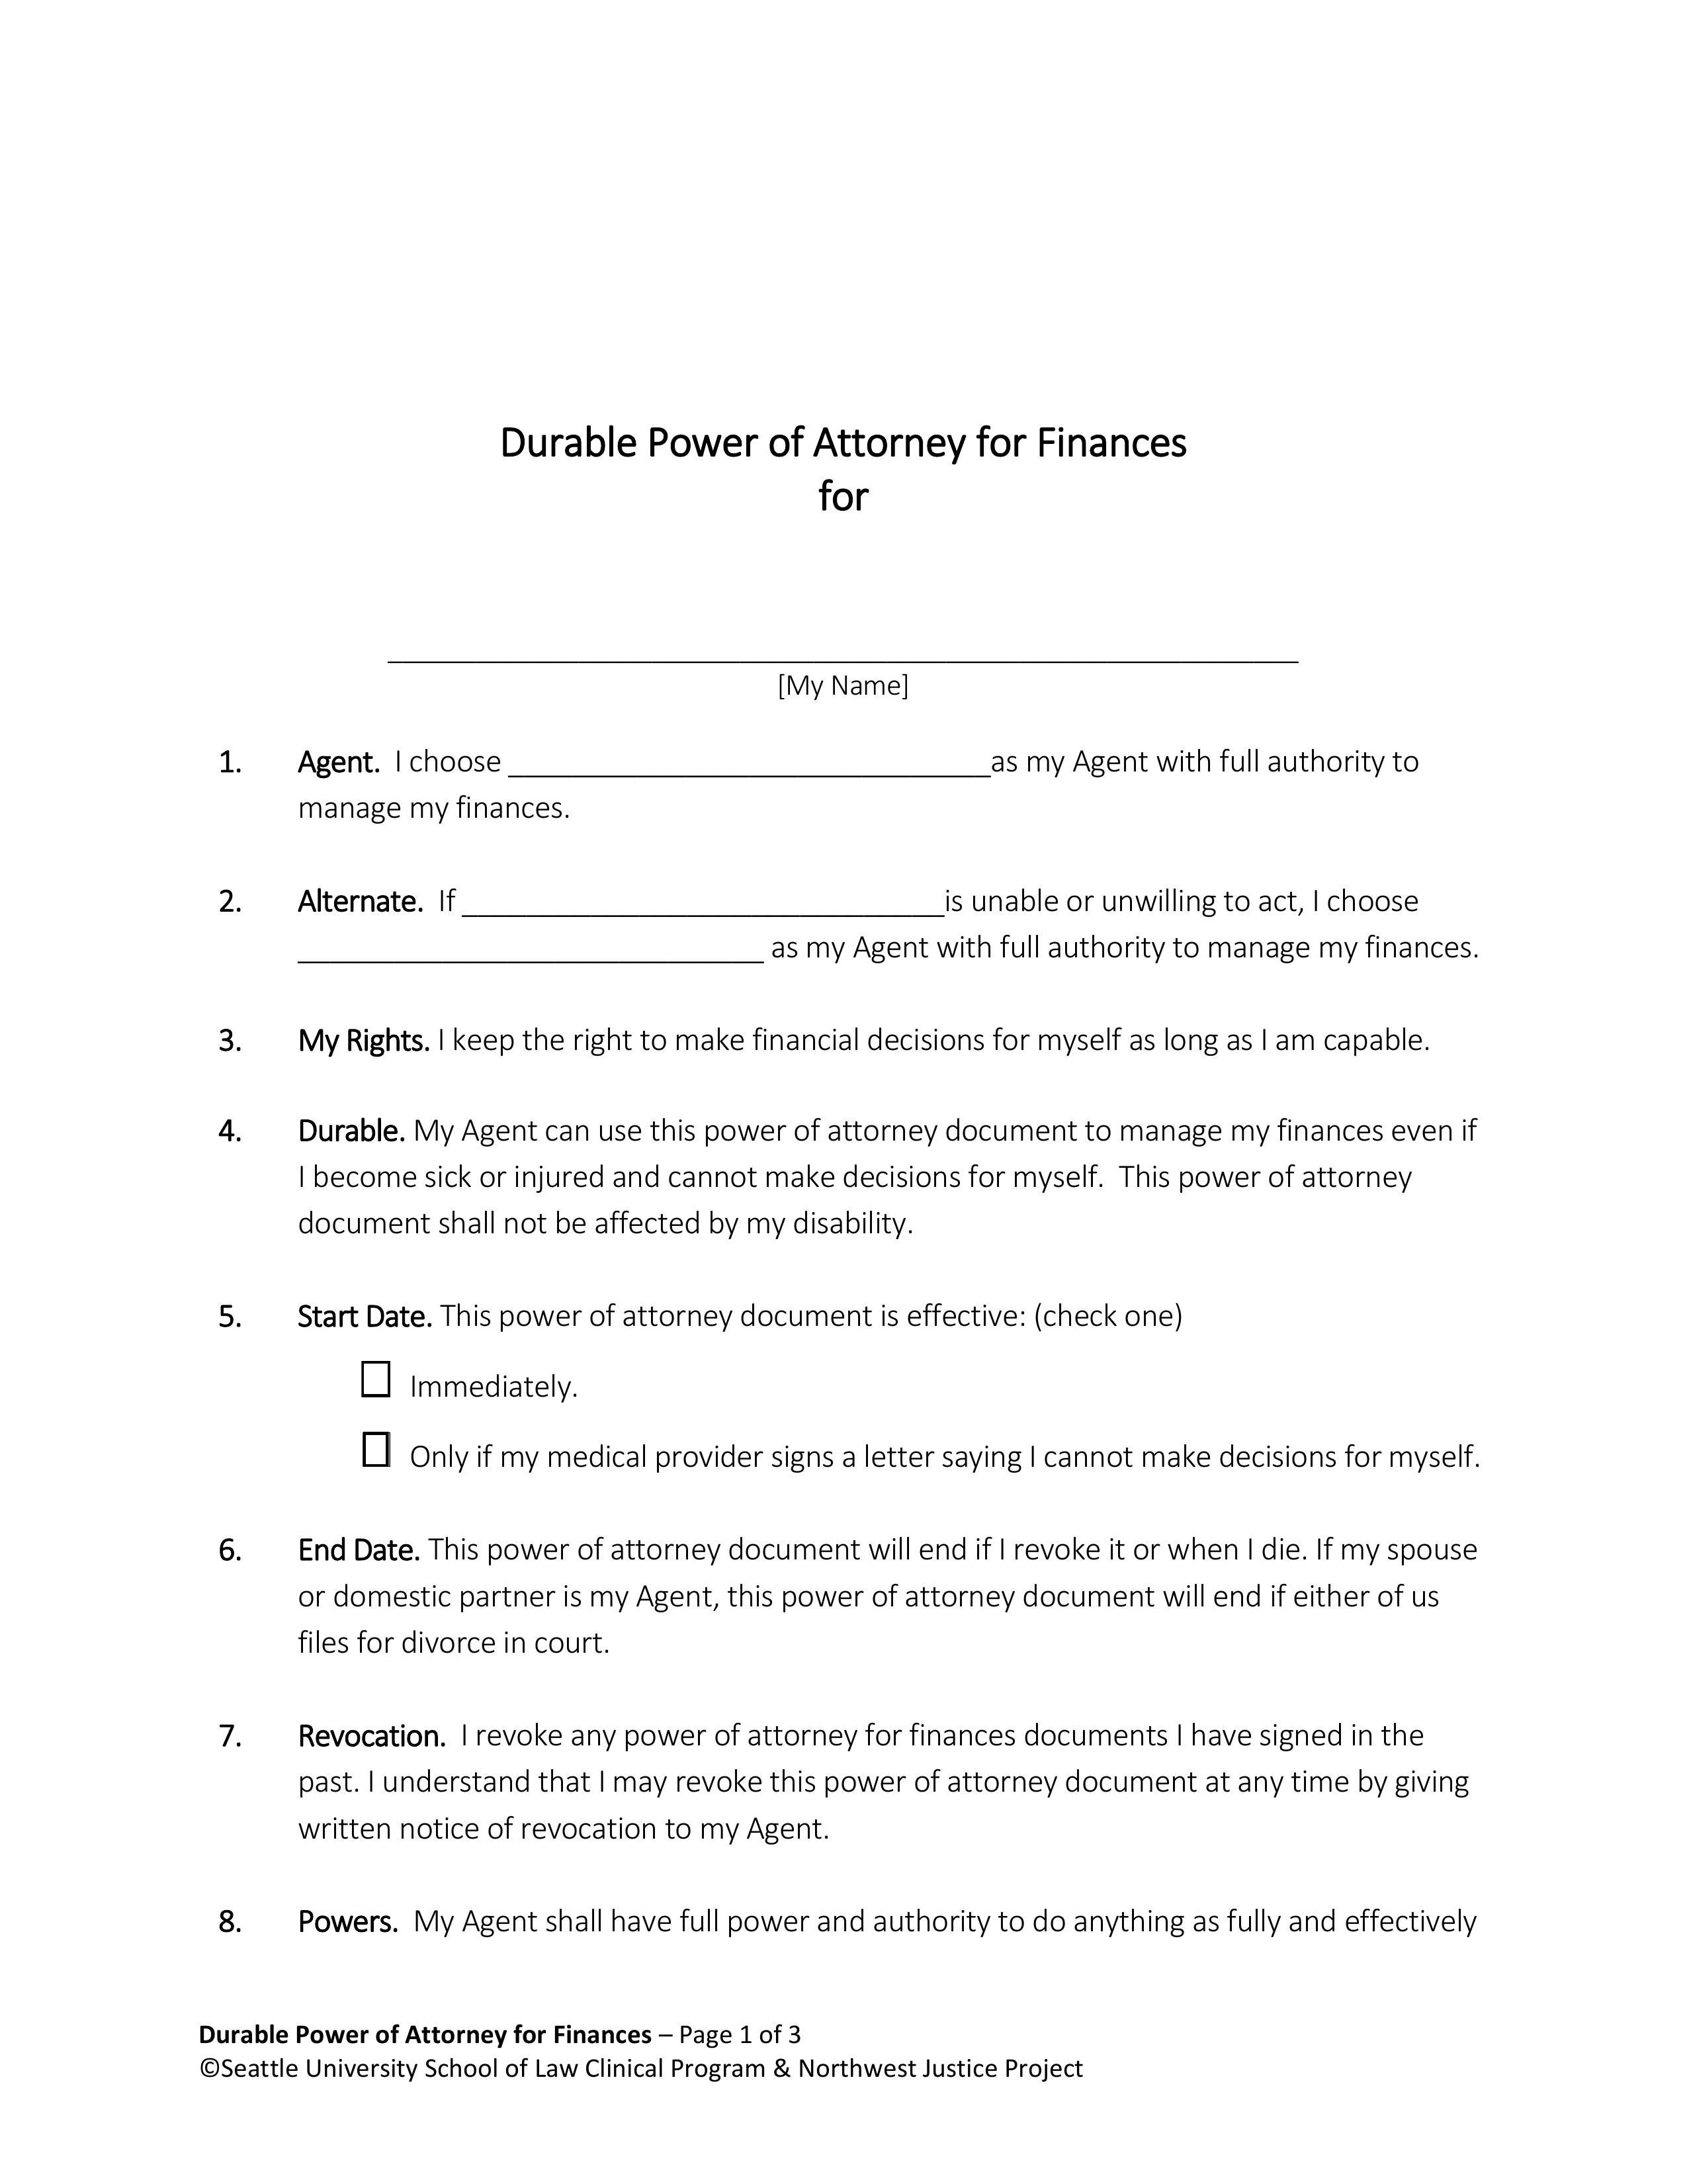 power of attorney form washington state  Free Washington Power of Attorney Forms - PDF | eForms ...